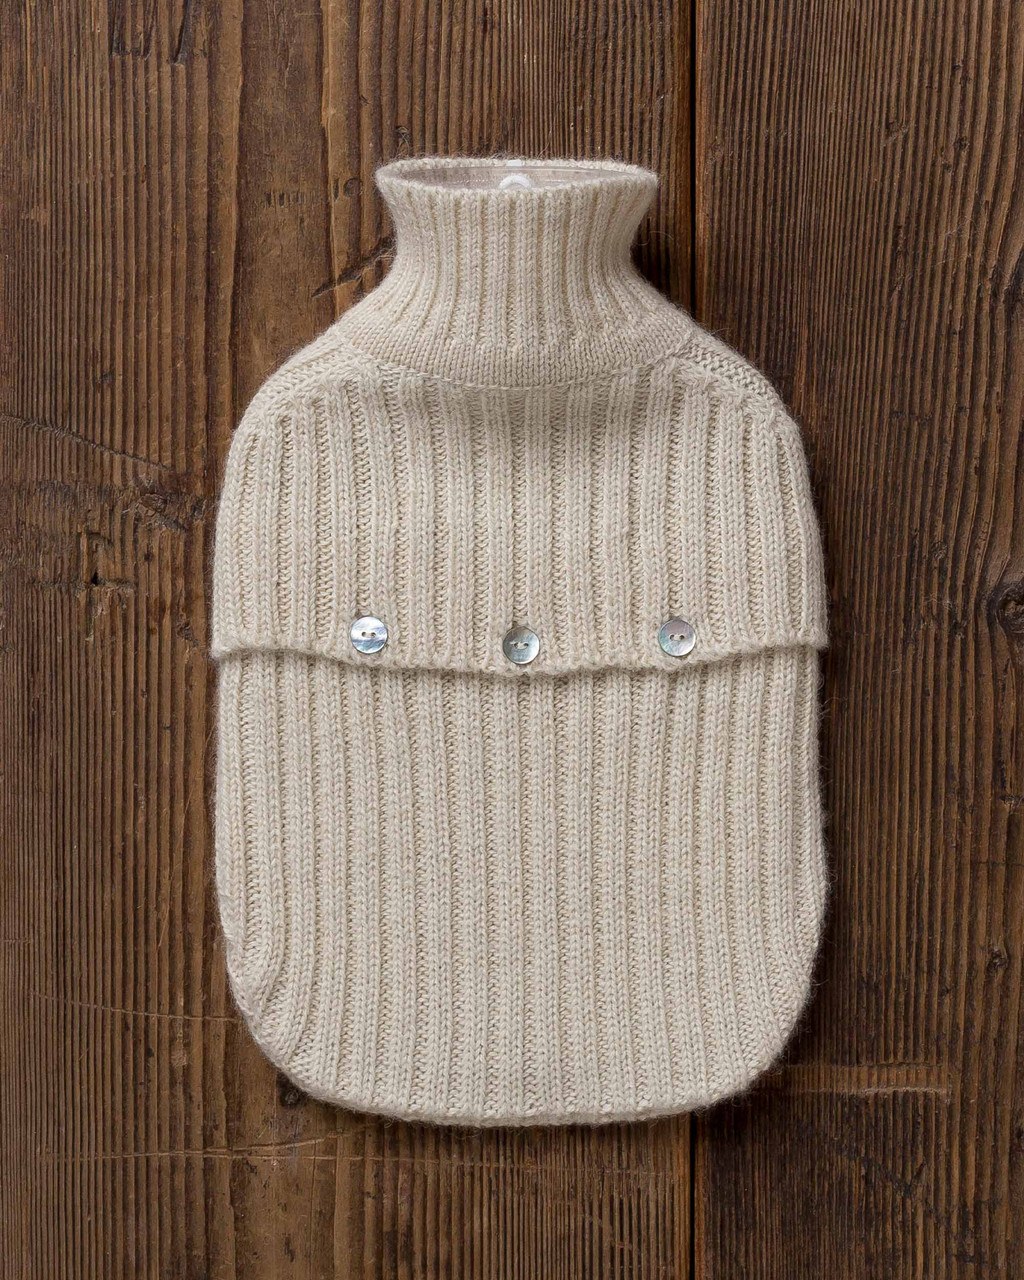 Alicia Adams Alpaca Hot Water Bottle, alpaca gift items, alpaca hot water bottle cover, fair trade made in peru, ivory alpaca hot water bottle